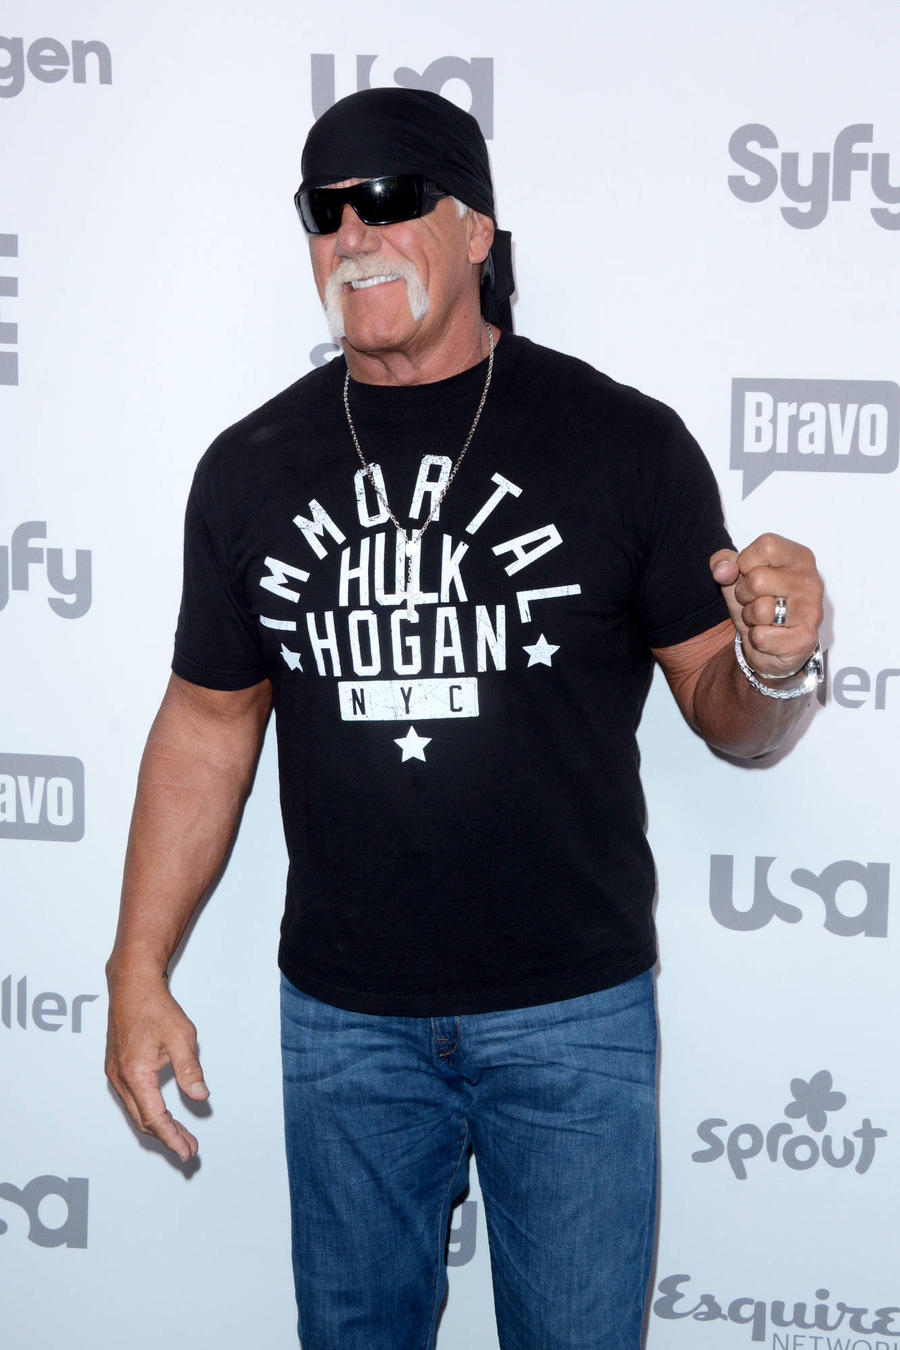 Hulk Hogan Wins $31 Million Settlement Following Gawker Sex Tape Leak